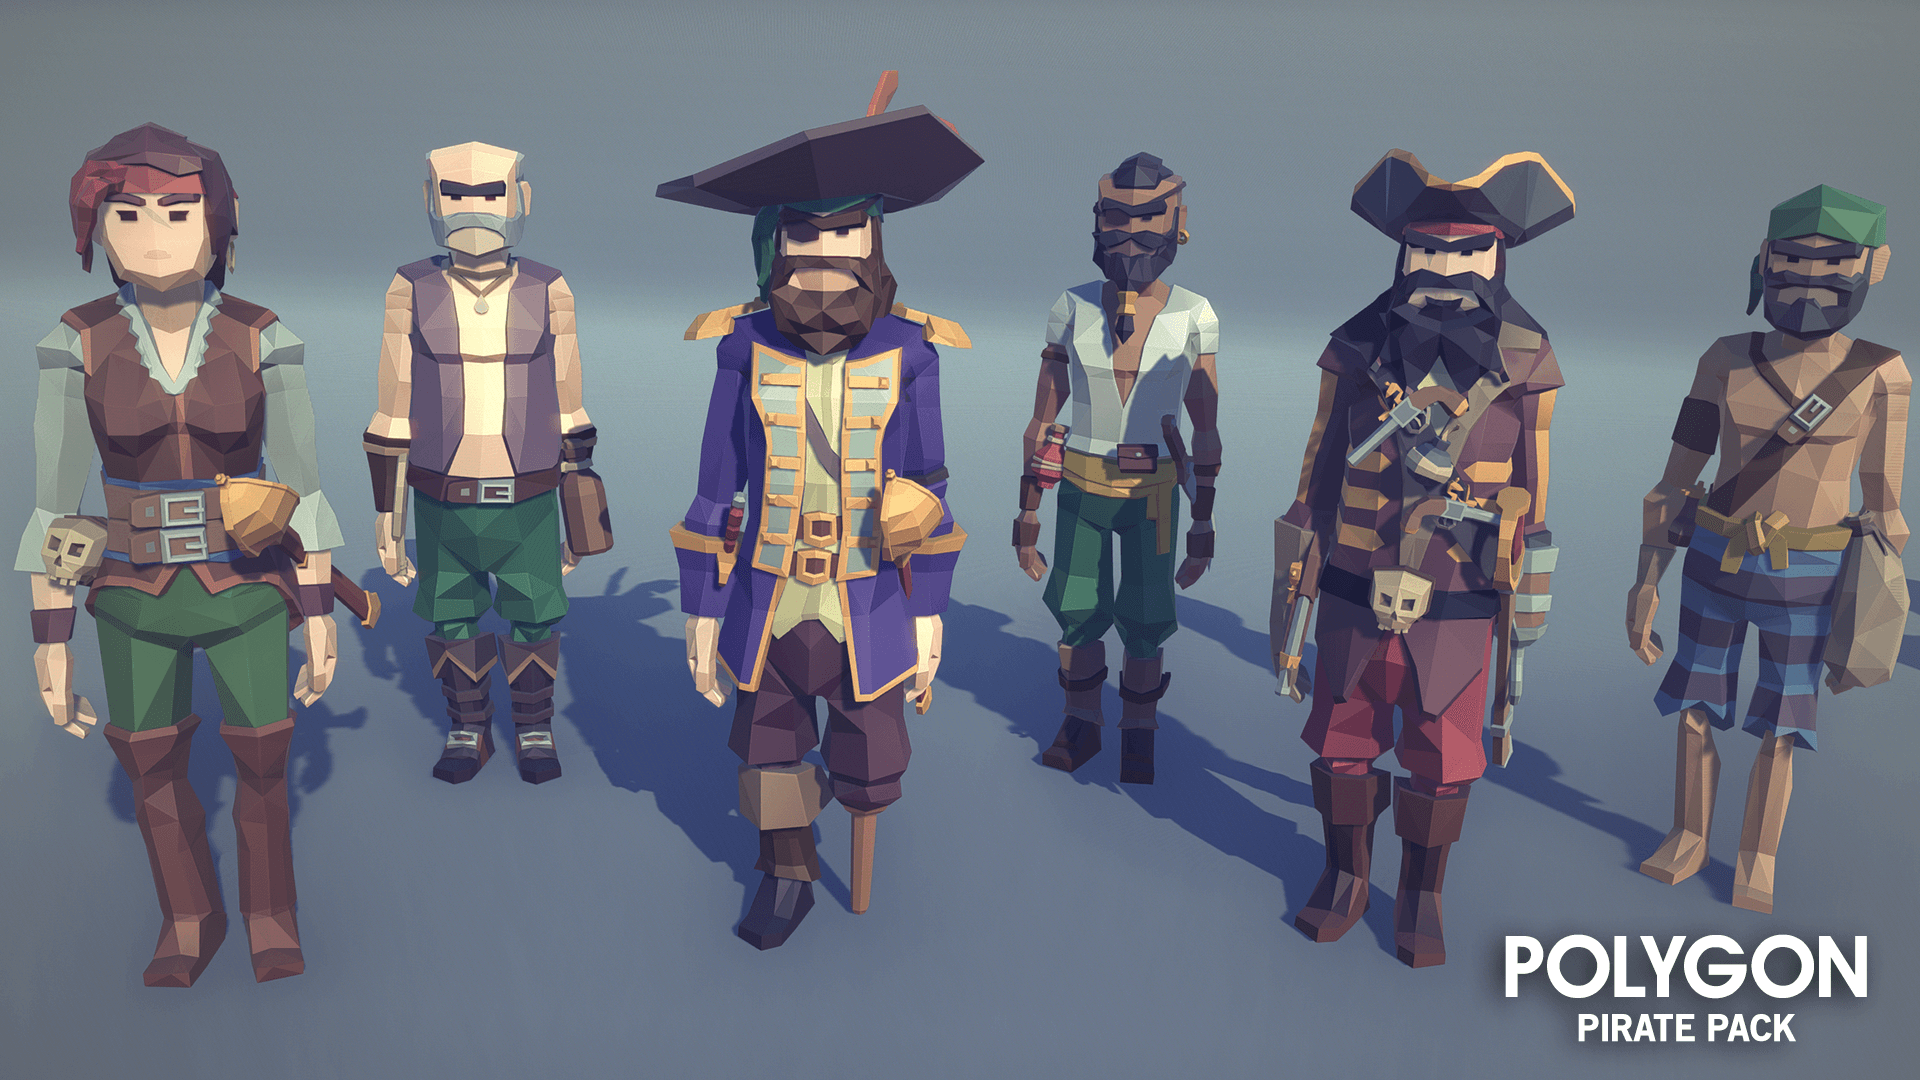 Polygon Pirate Pack